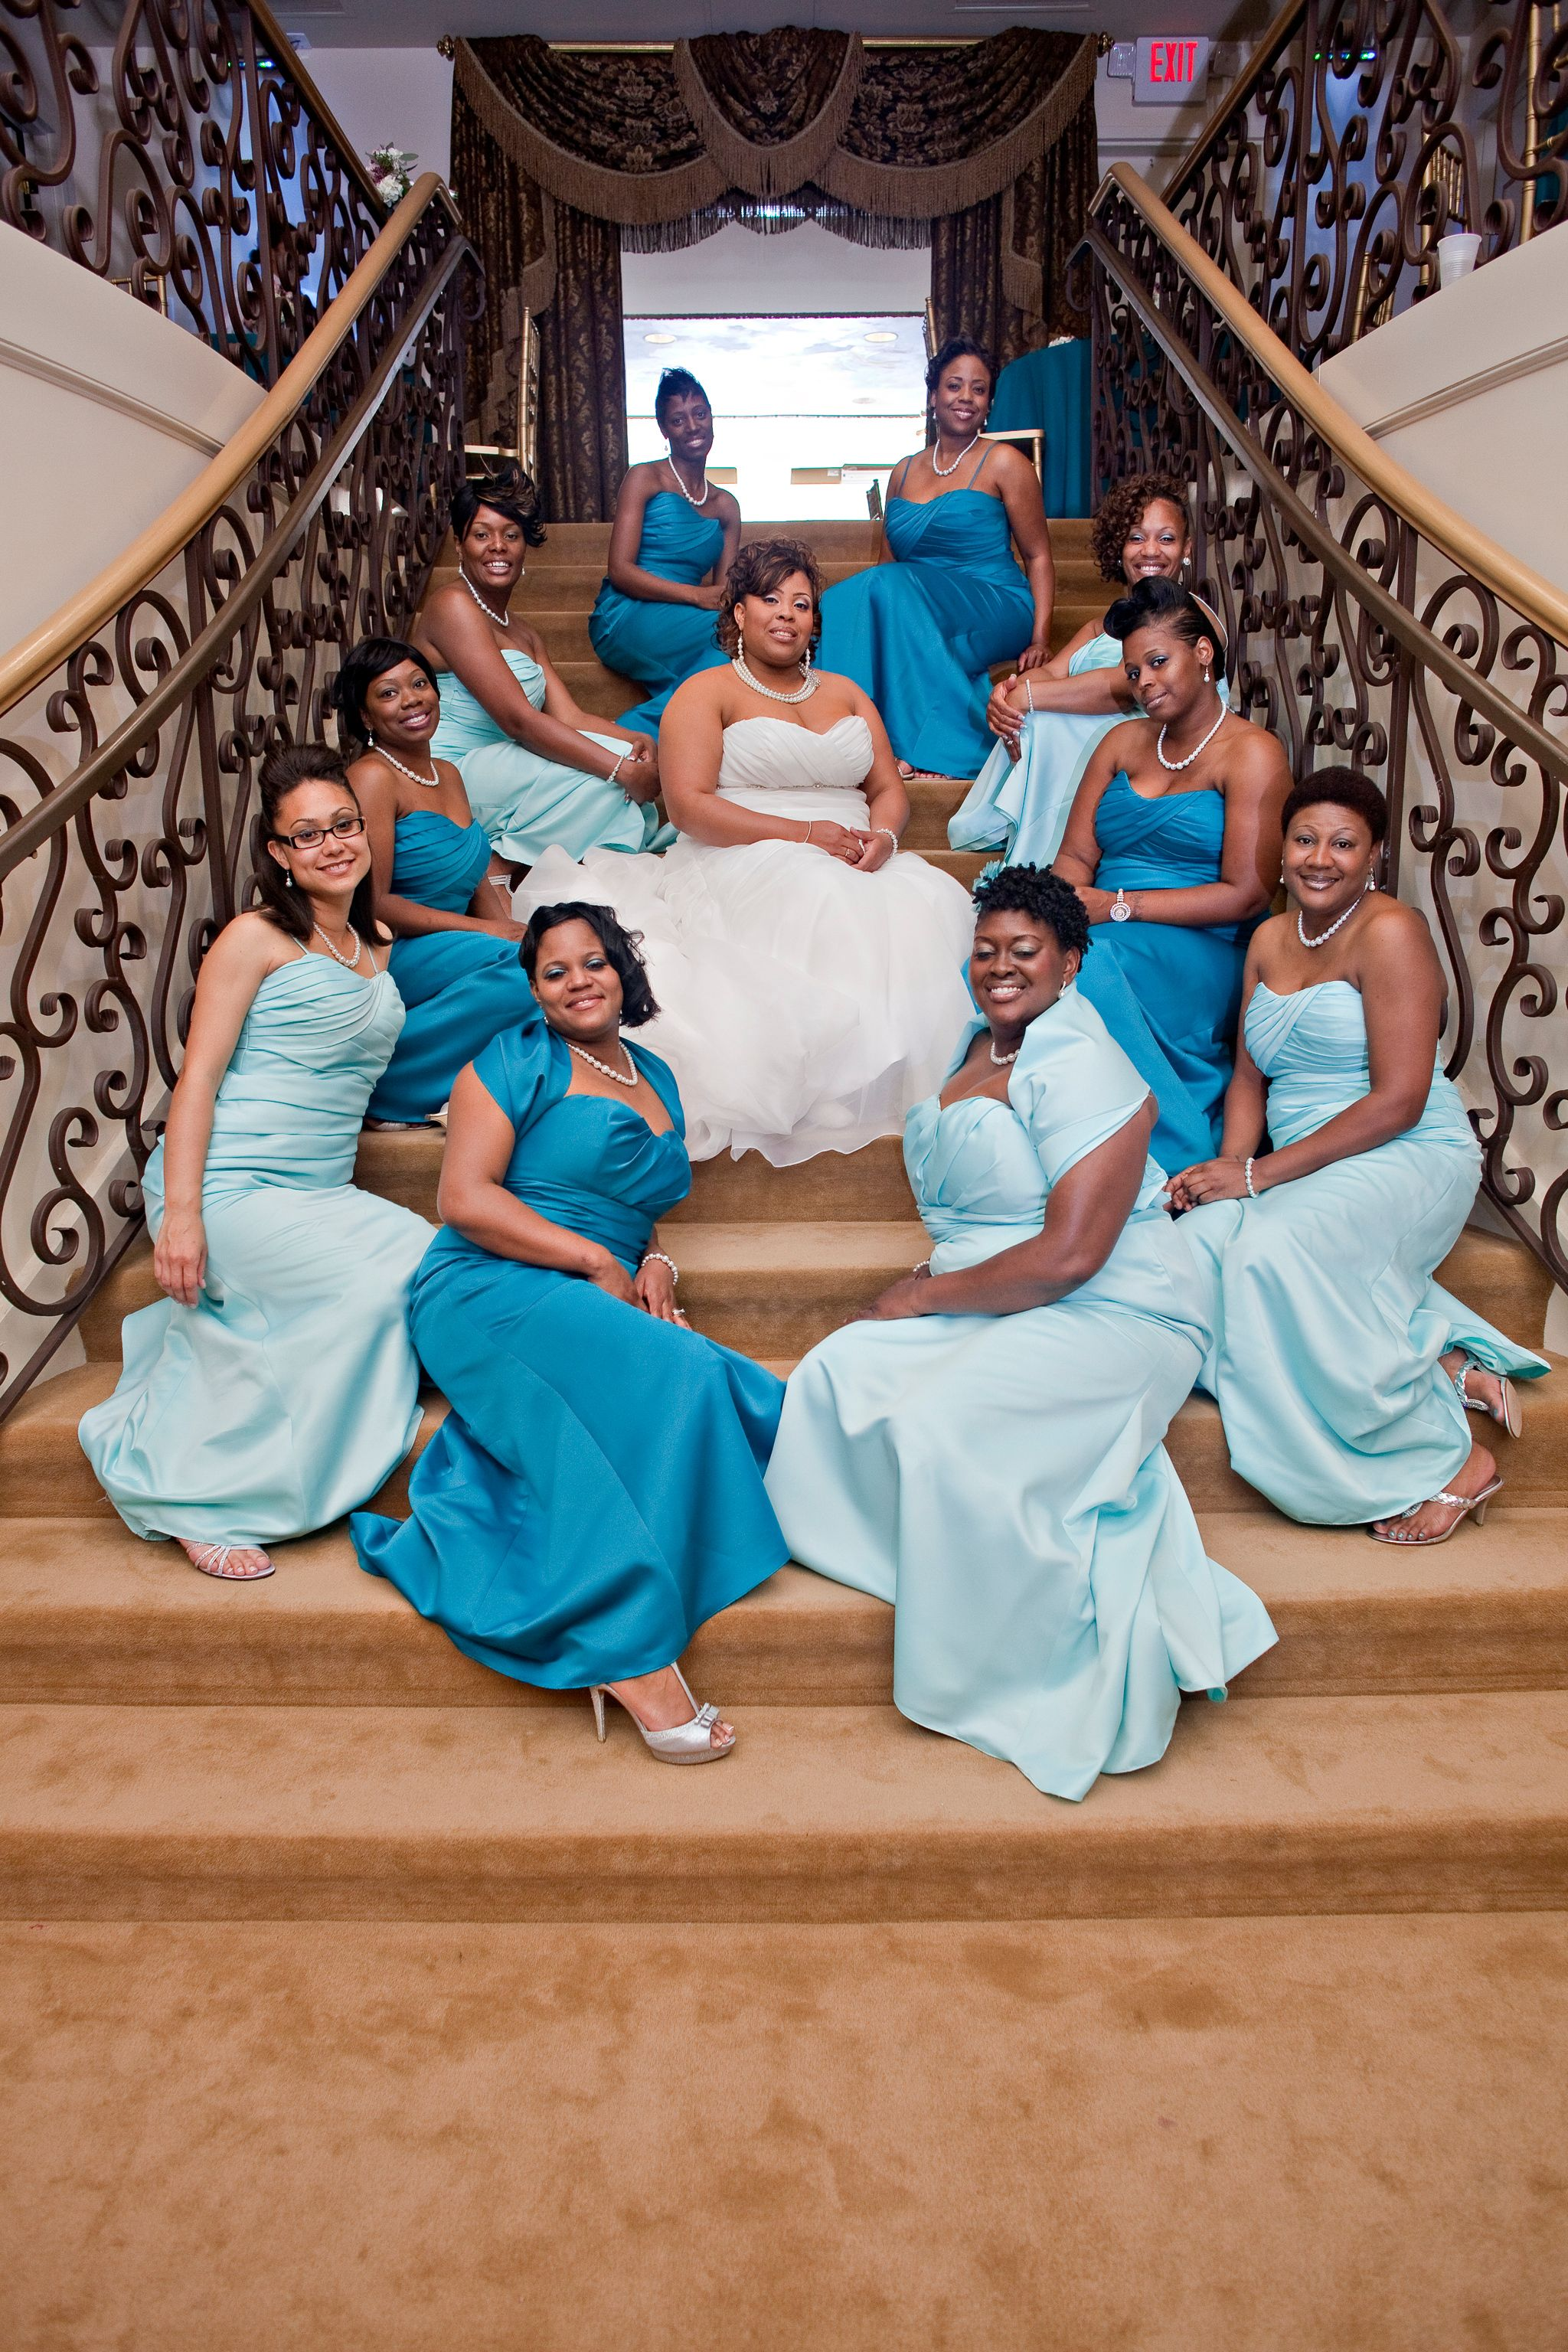 Bridgette tyrale different colored bridesmaid dresses bridgette tyrale different colored bridesmaid dresses anfesas jewelers home of the grand ombrellifo Images